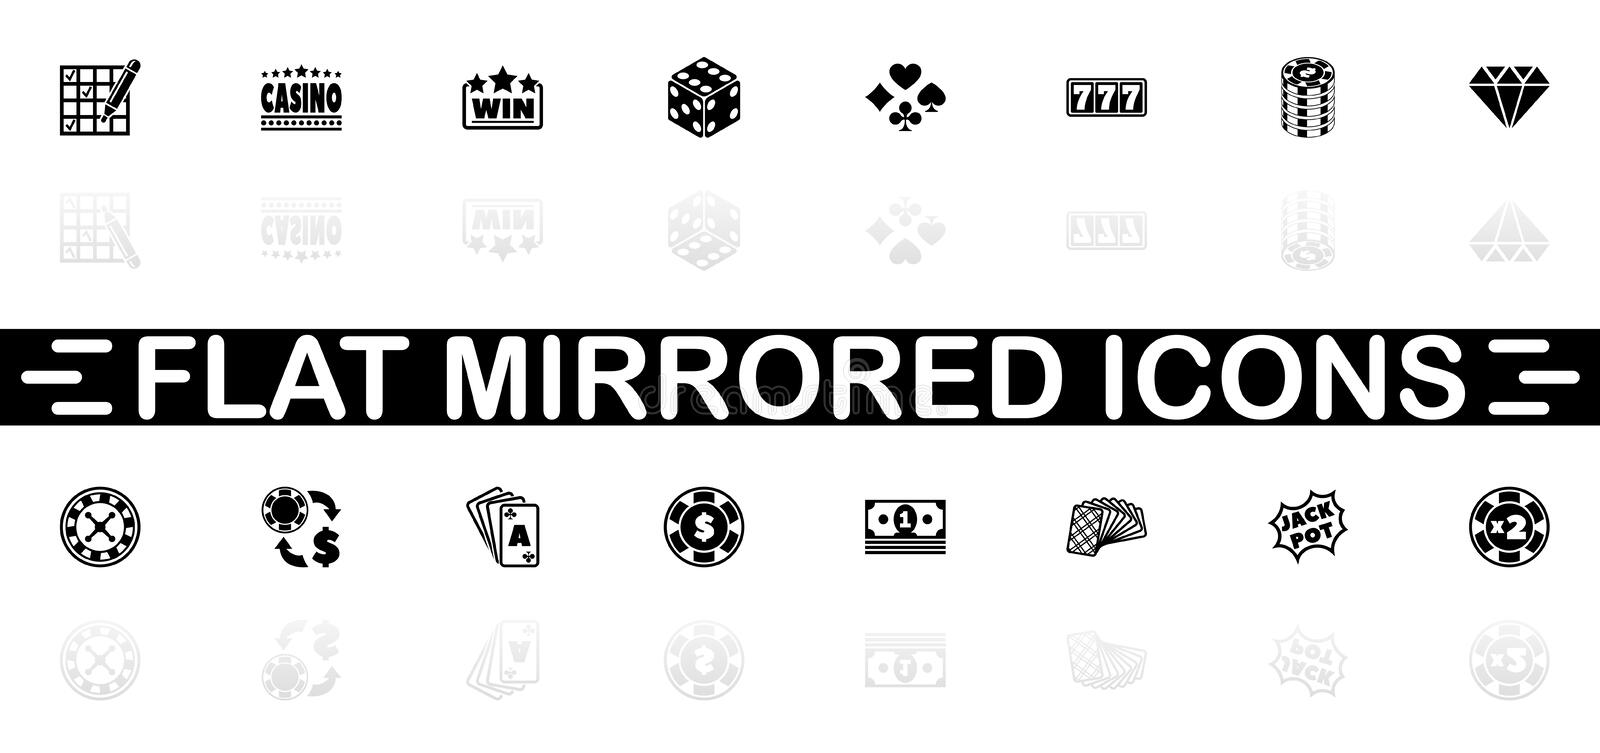 Gambling - Flat Vector Icons. Gambling icons - Black symbol on white background. Simple illustration. Flat Vector Icon. Mirror Reflection Shadow. Can be used in vector illustration